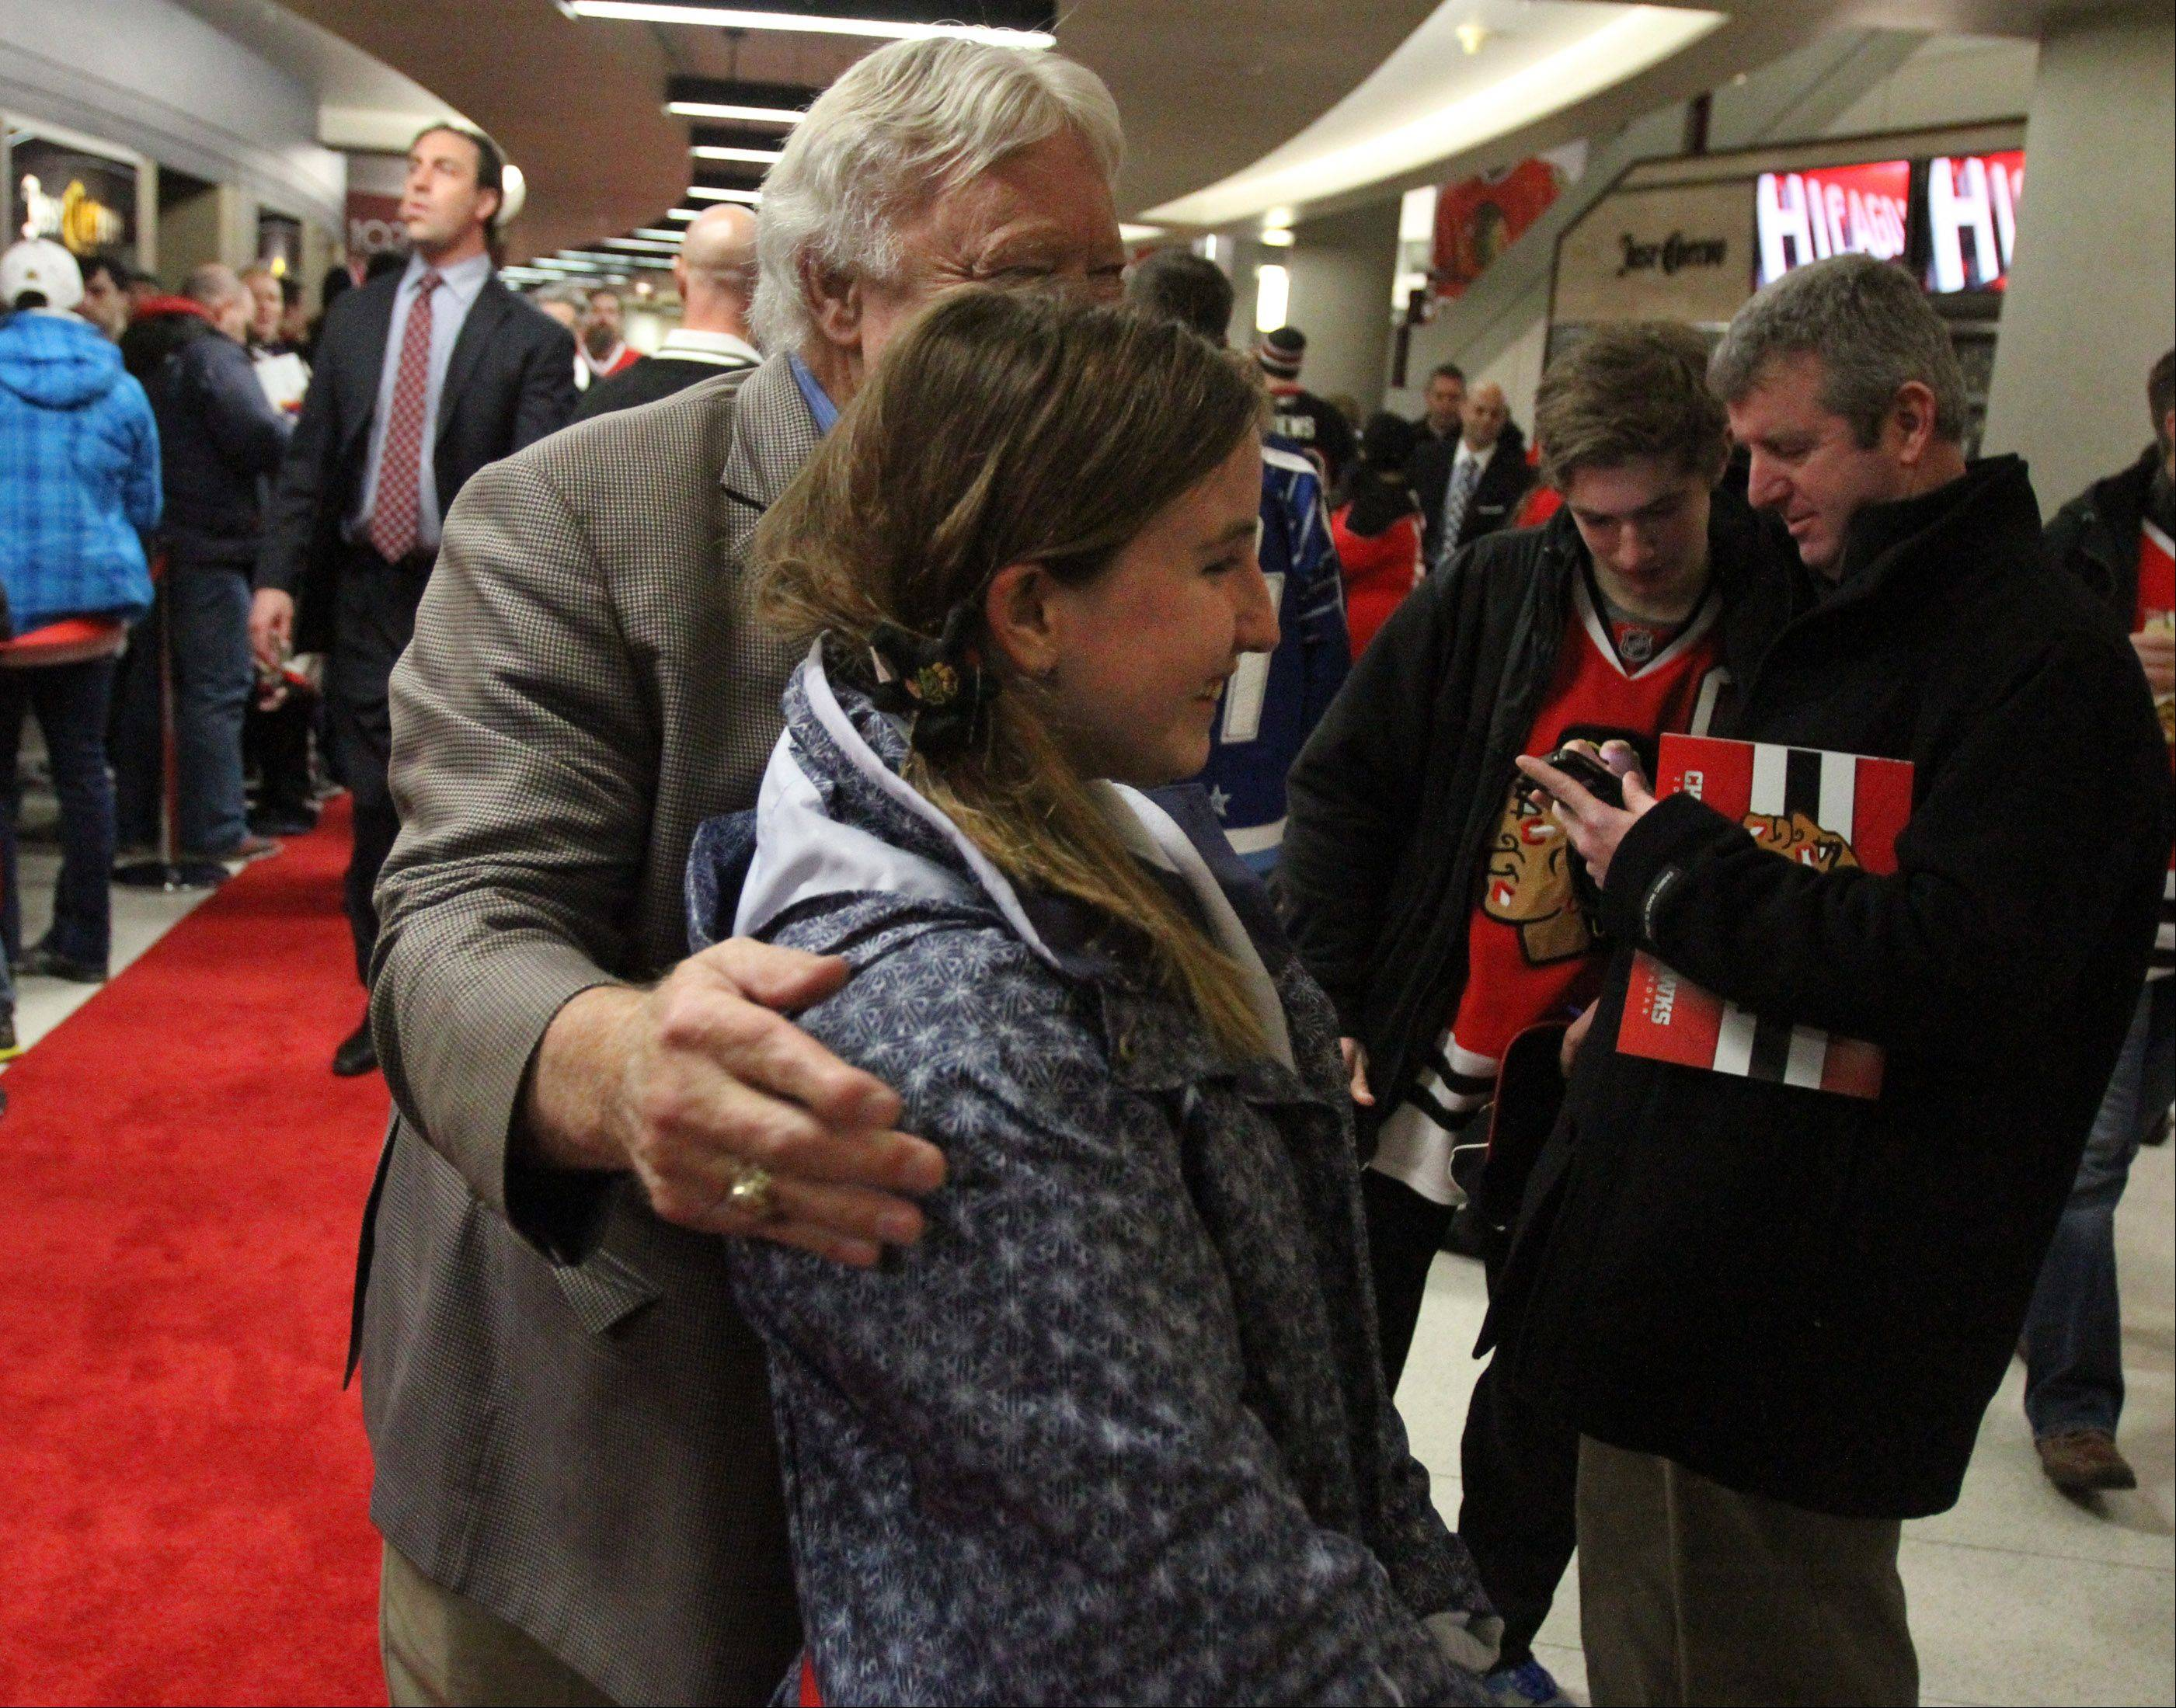 Morgan Taylor, 12, of Crystal Lake has her picture taken with Chicago Blackhawks great Bobby Hull.